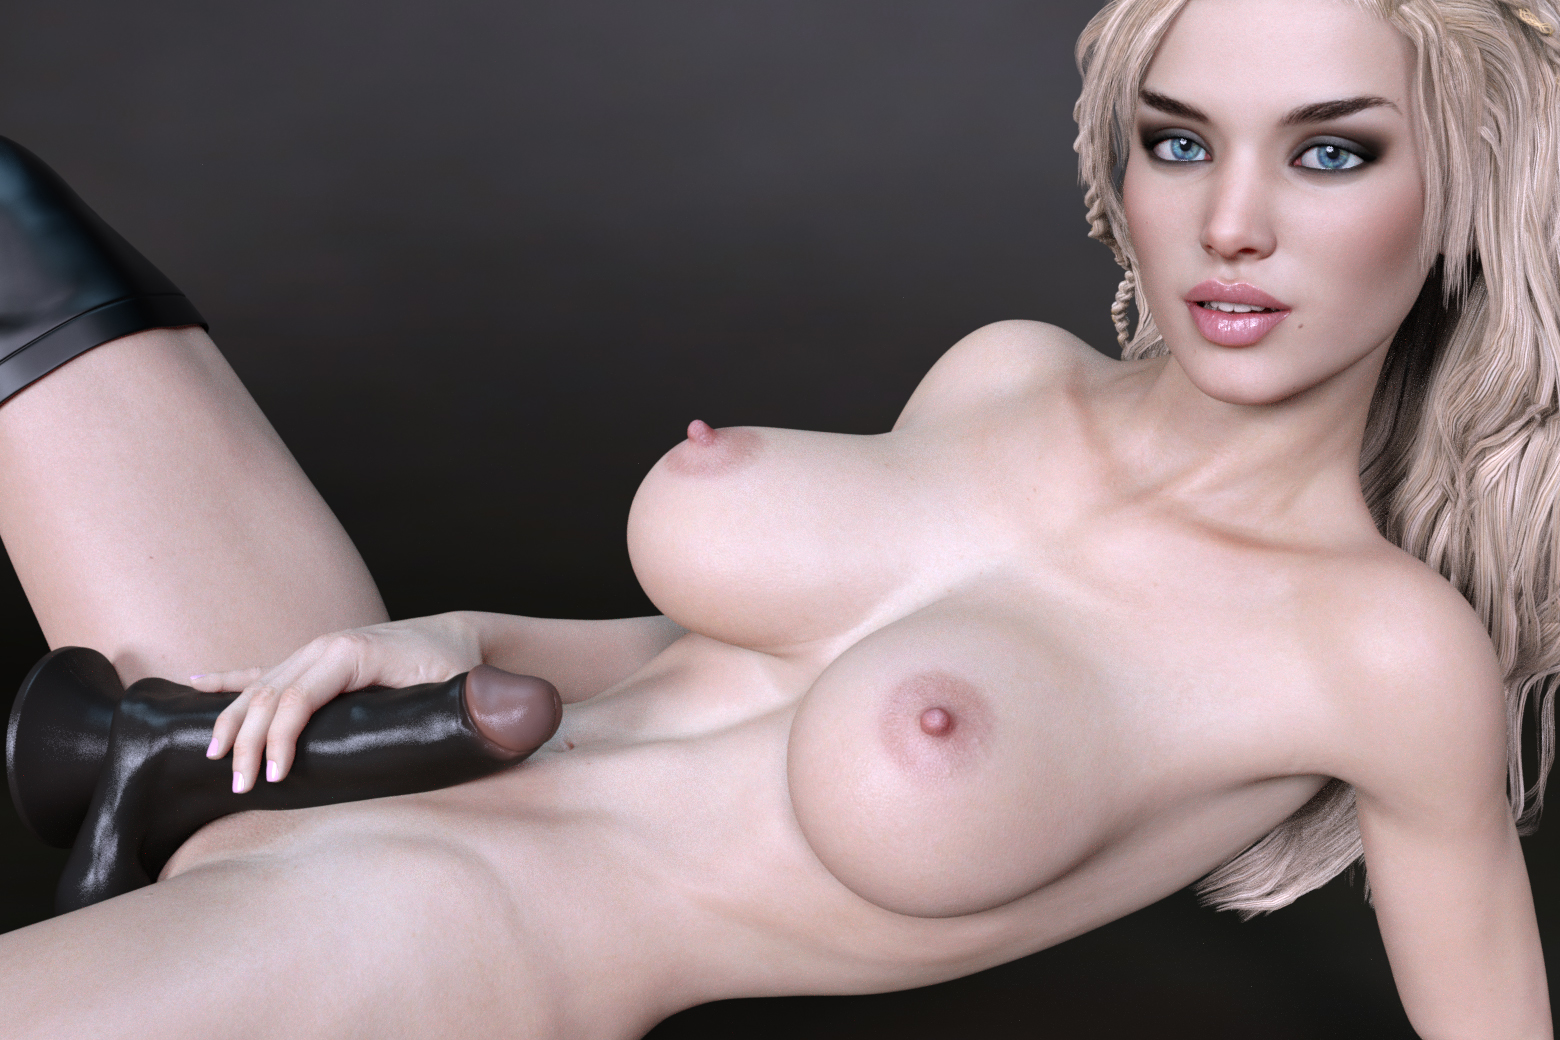 Sienna Reflects on First Big Black Dildo